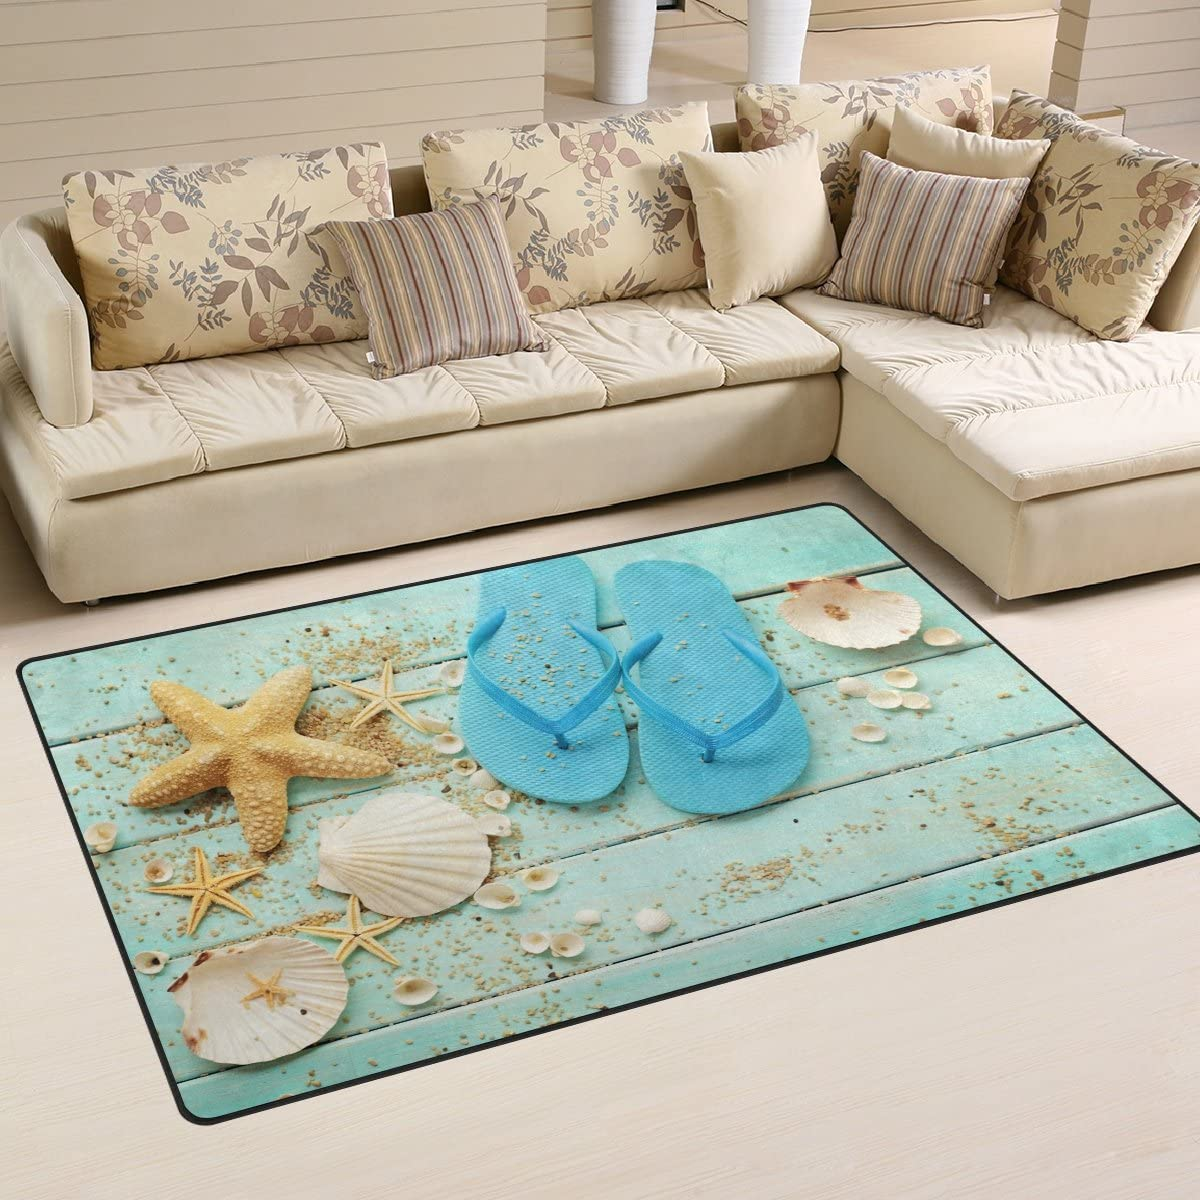 WOZO Beach Summer Shell Starfish on Wooden Area Rug Rugs Non-Slip Floor Mat Doormat